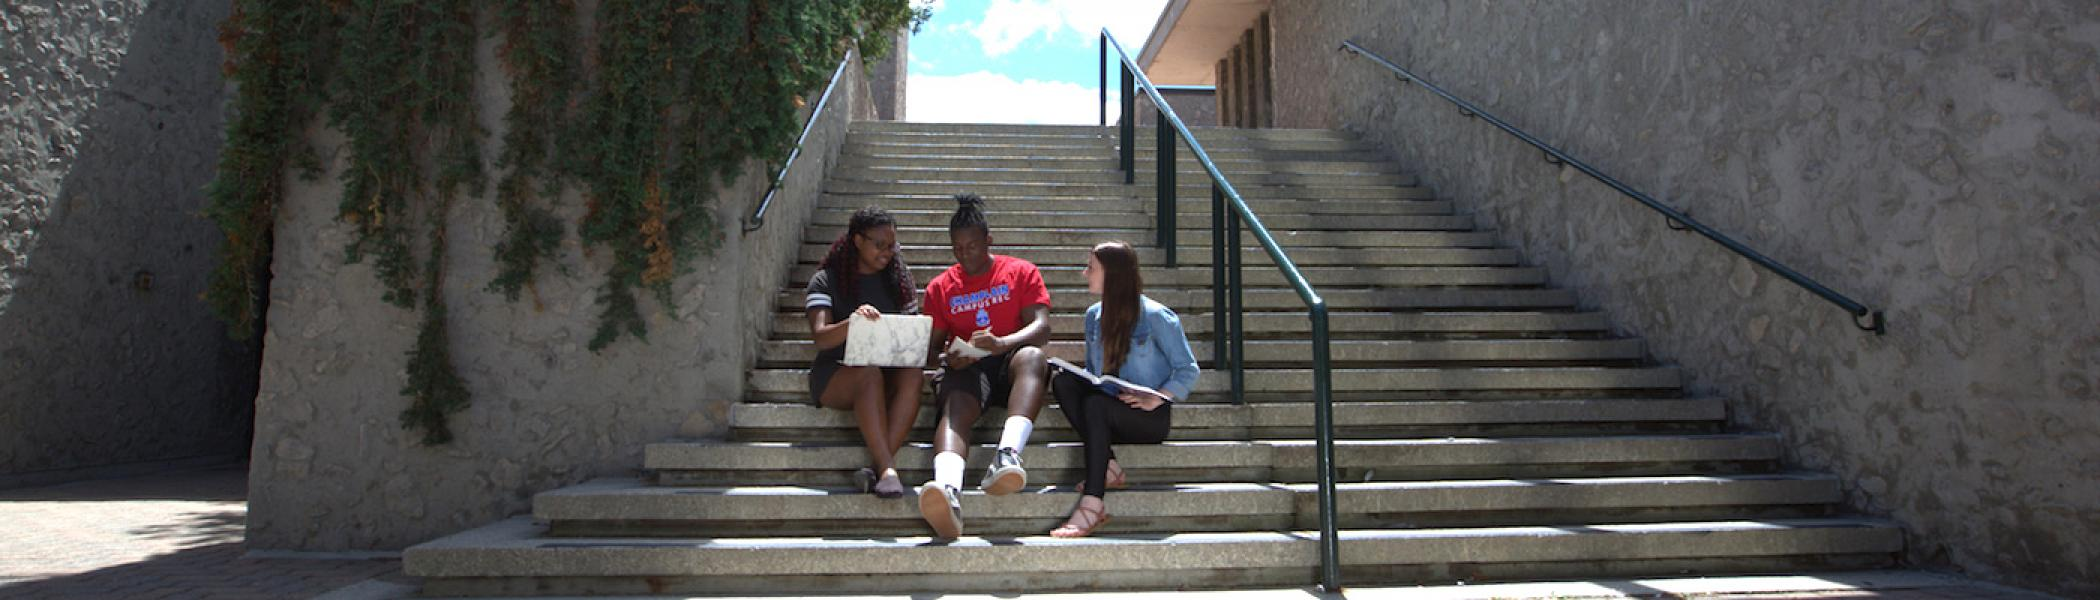 3 students sitting on steps outside working on a laptop